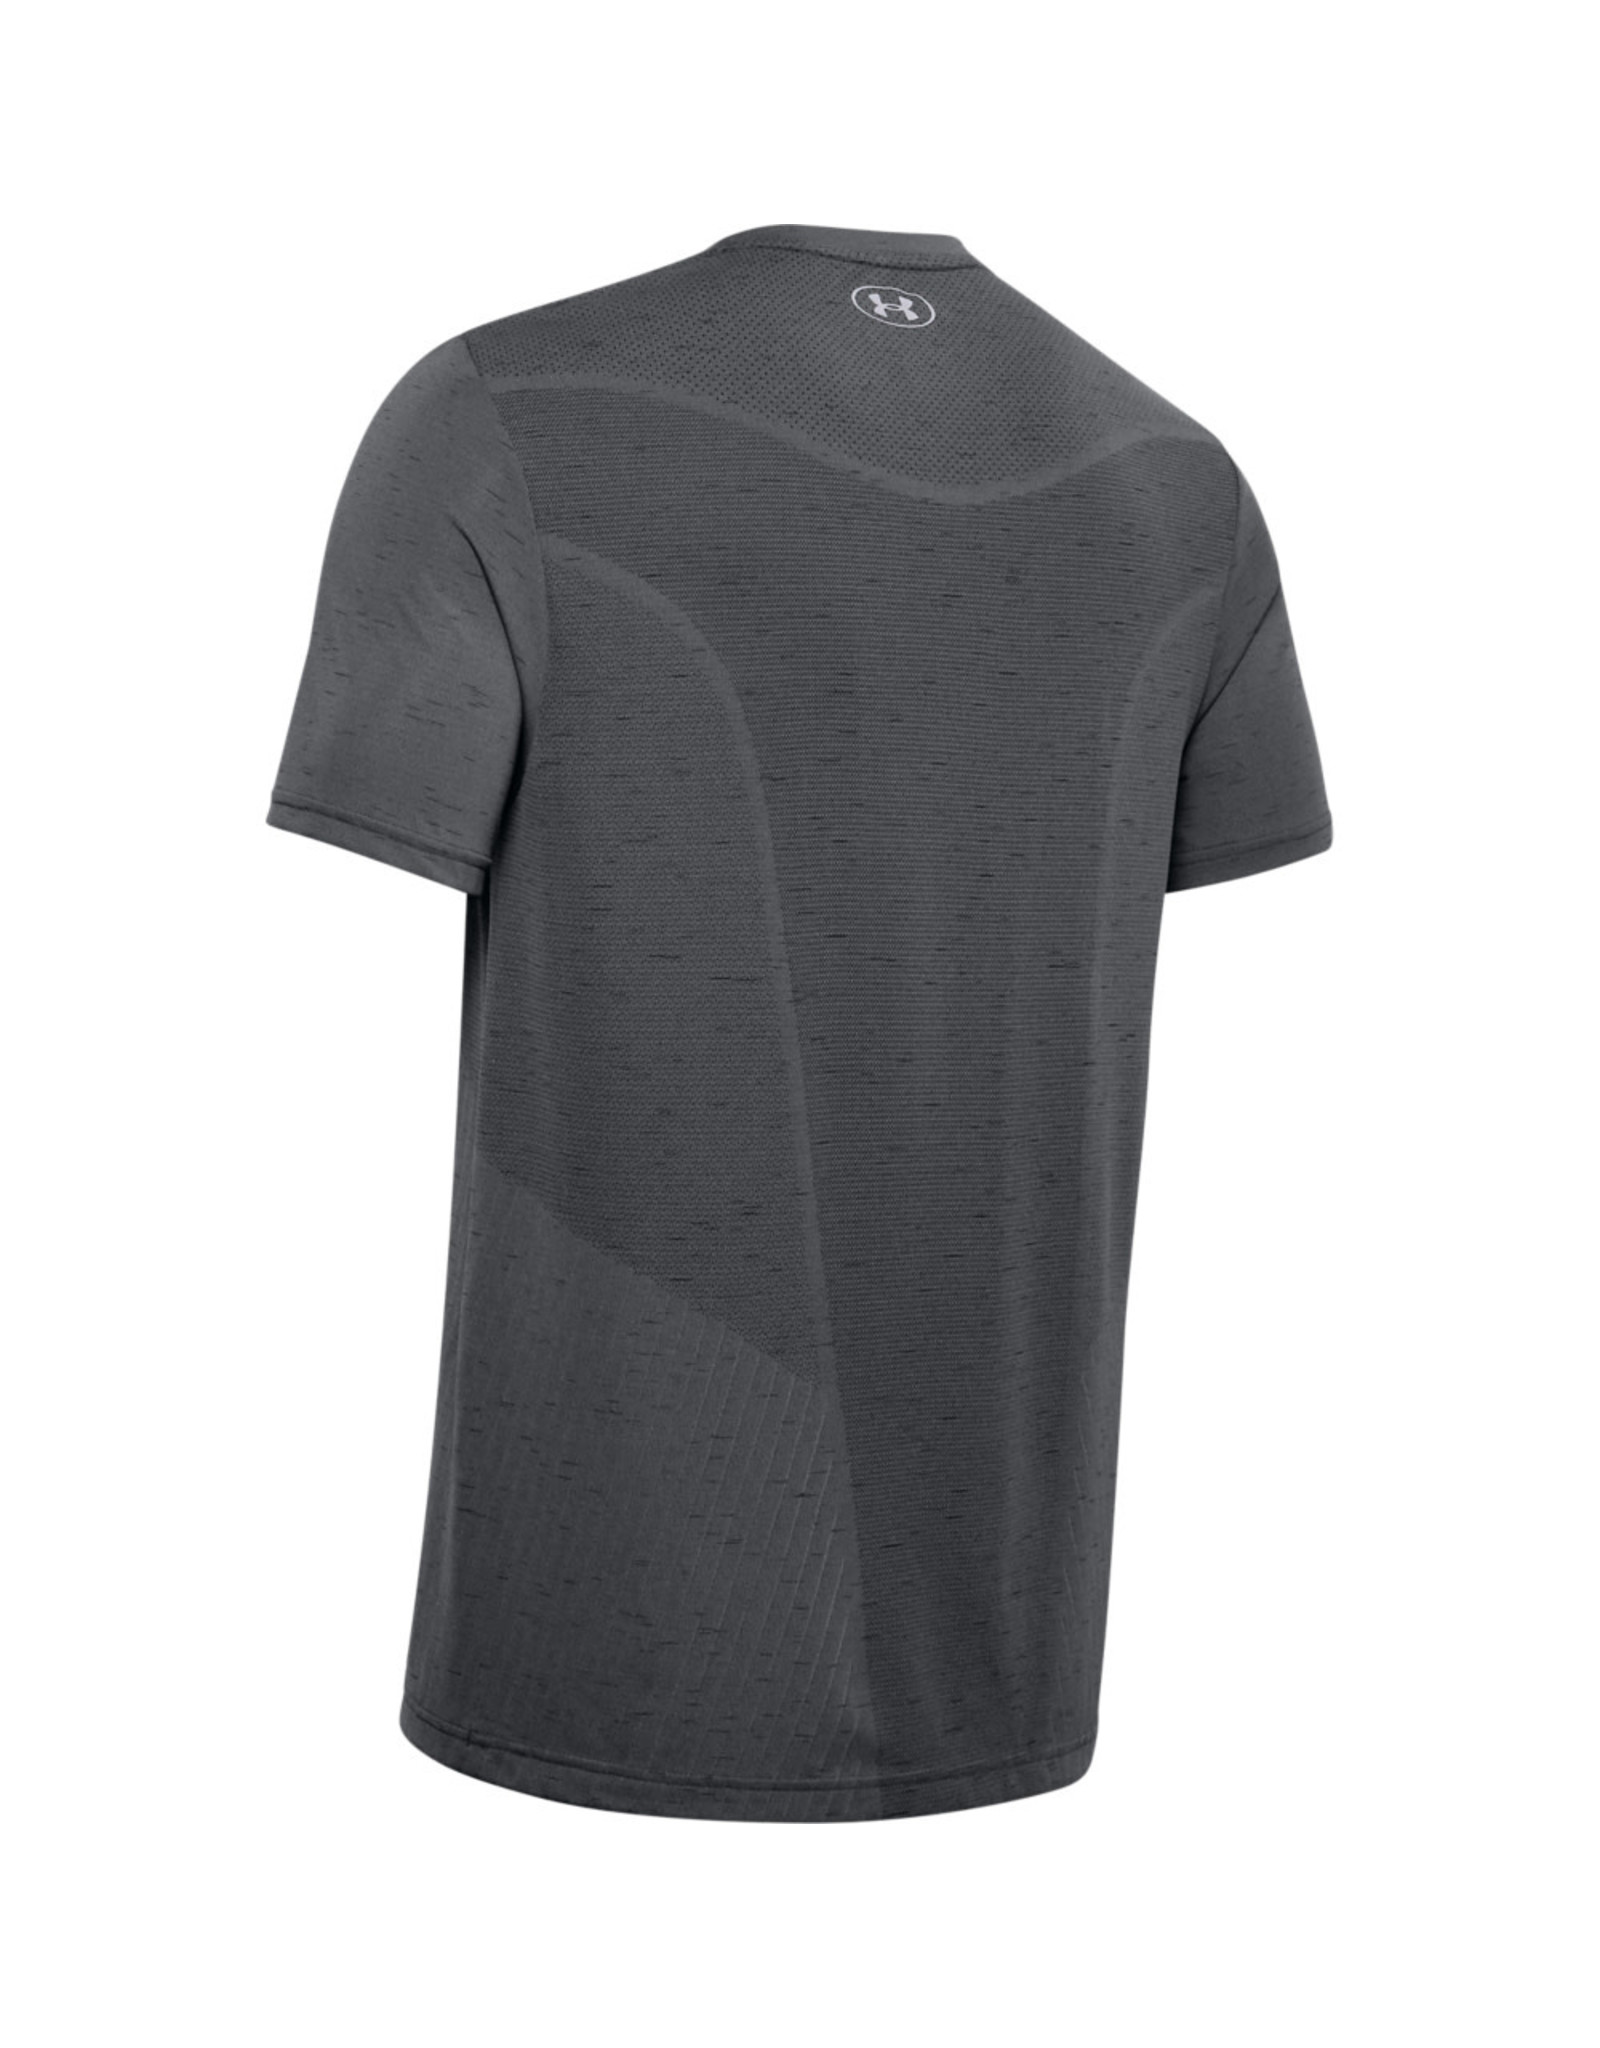 Under Armour UA Seamless SS - Pitch Gray--Mod Gray